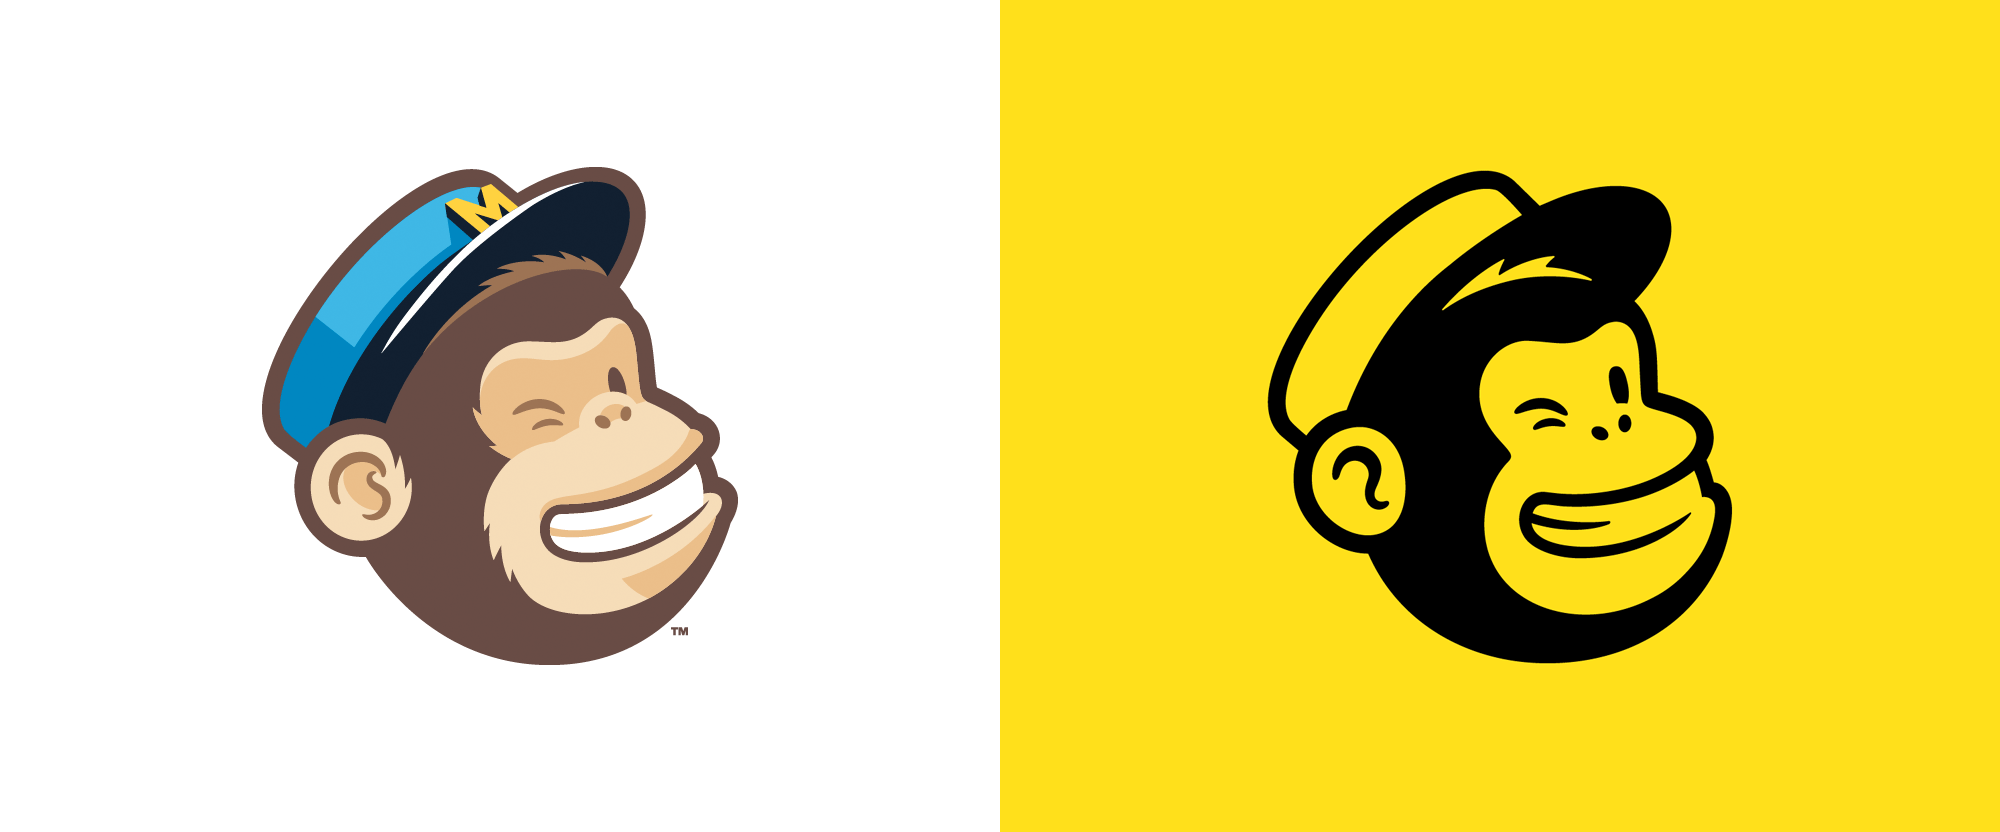 New Logo and Identity for Mailchimp by COLLINS and In-house